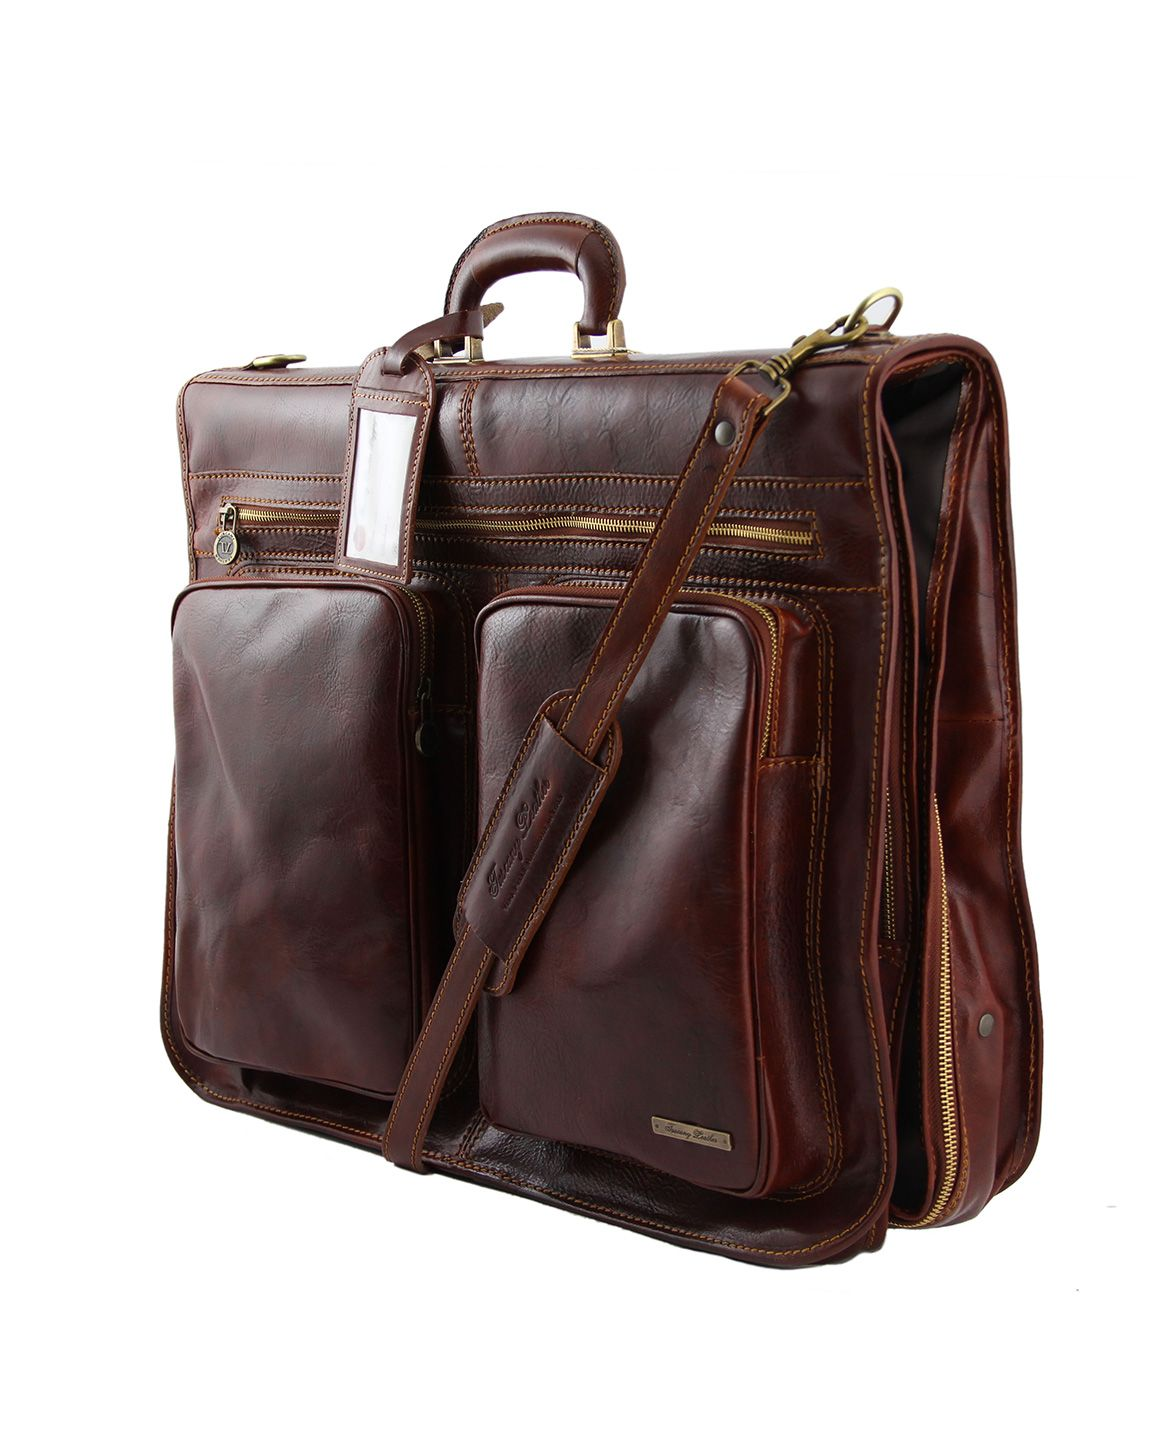 17 Best images about Italian Leather Travel Bags on Pinterest ...